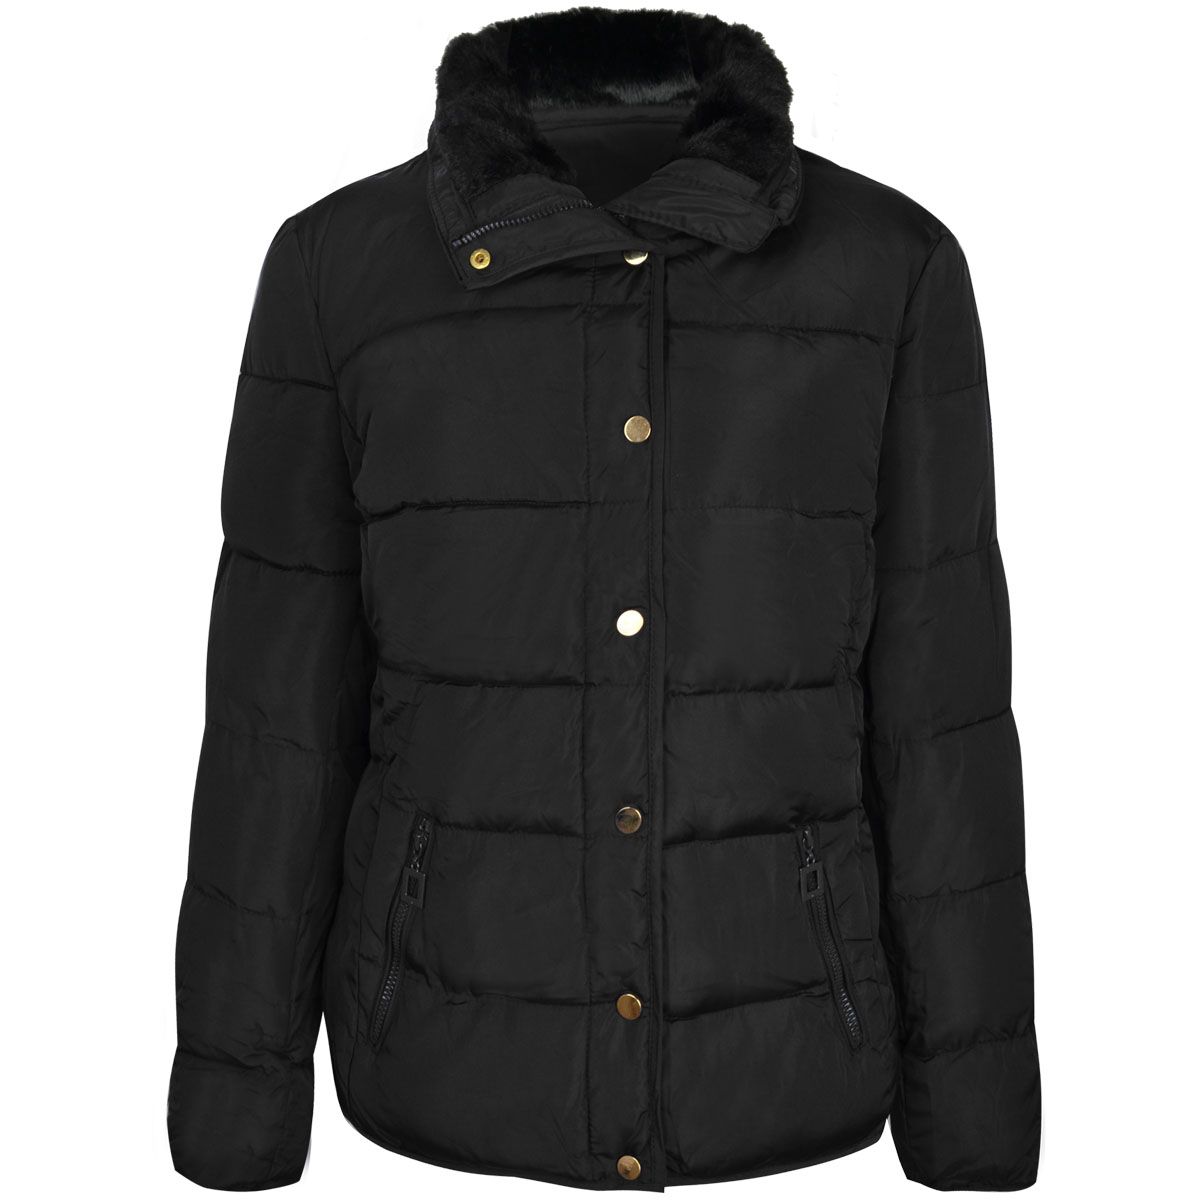 Looking for Wholesale Winter Coats! At North Pines, we sell 1st quality, graded irregulars, closeouts and seconds.